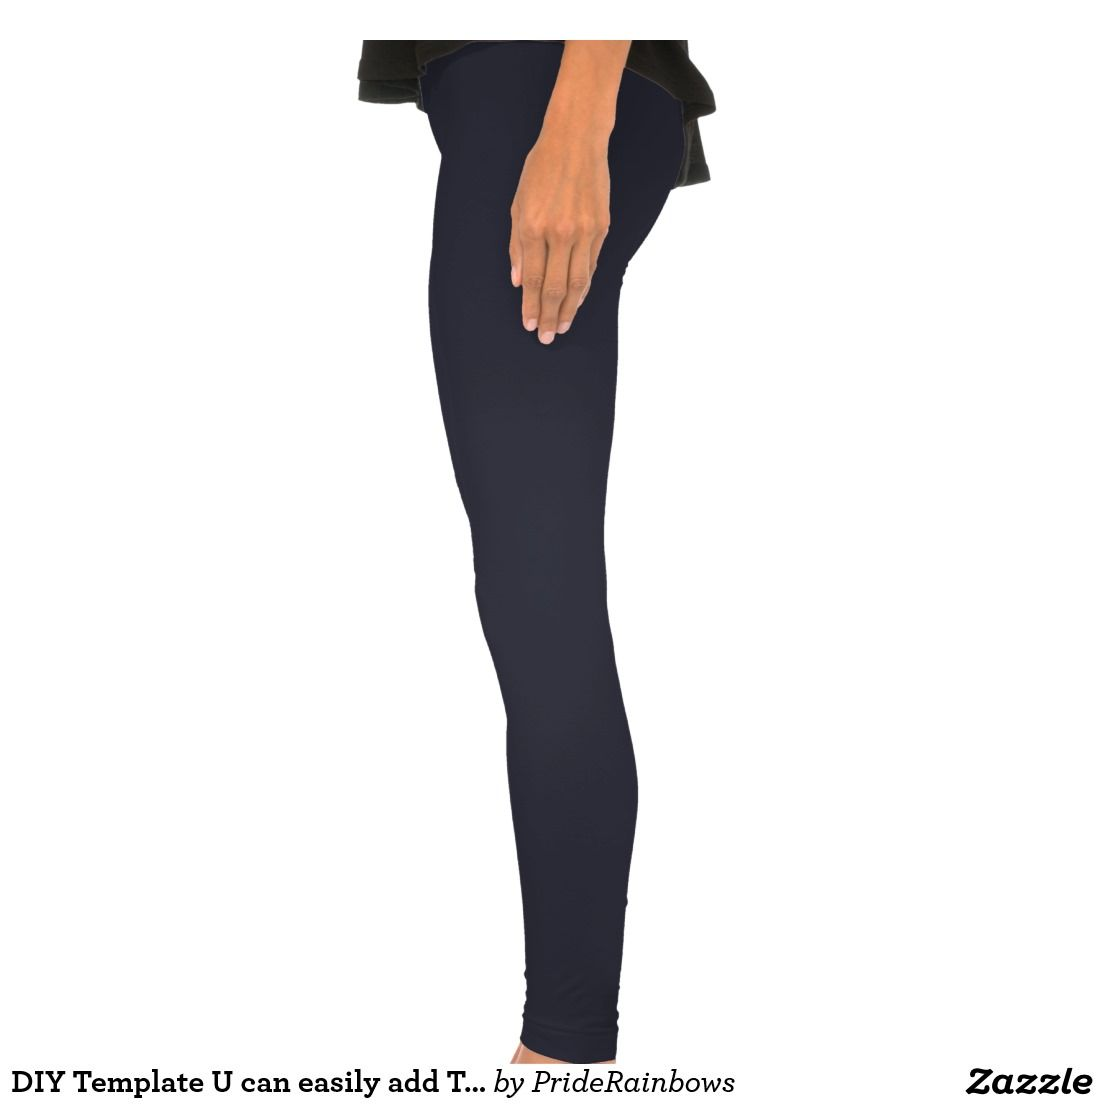 DIY Template U can easily add TEXT IMAGE Leggings | 101 Zazzle PRO ...